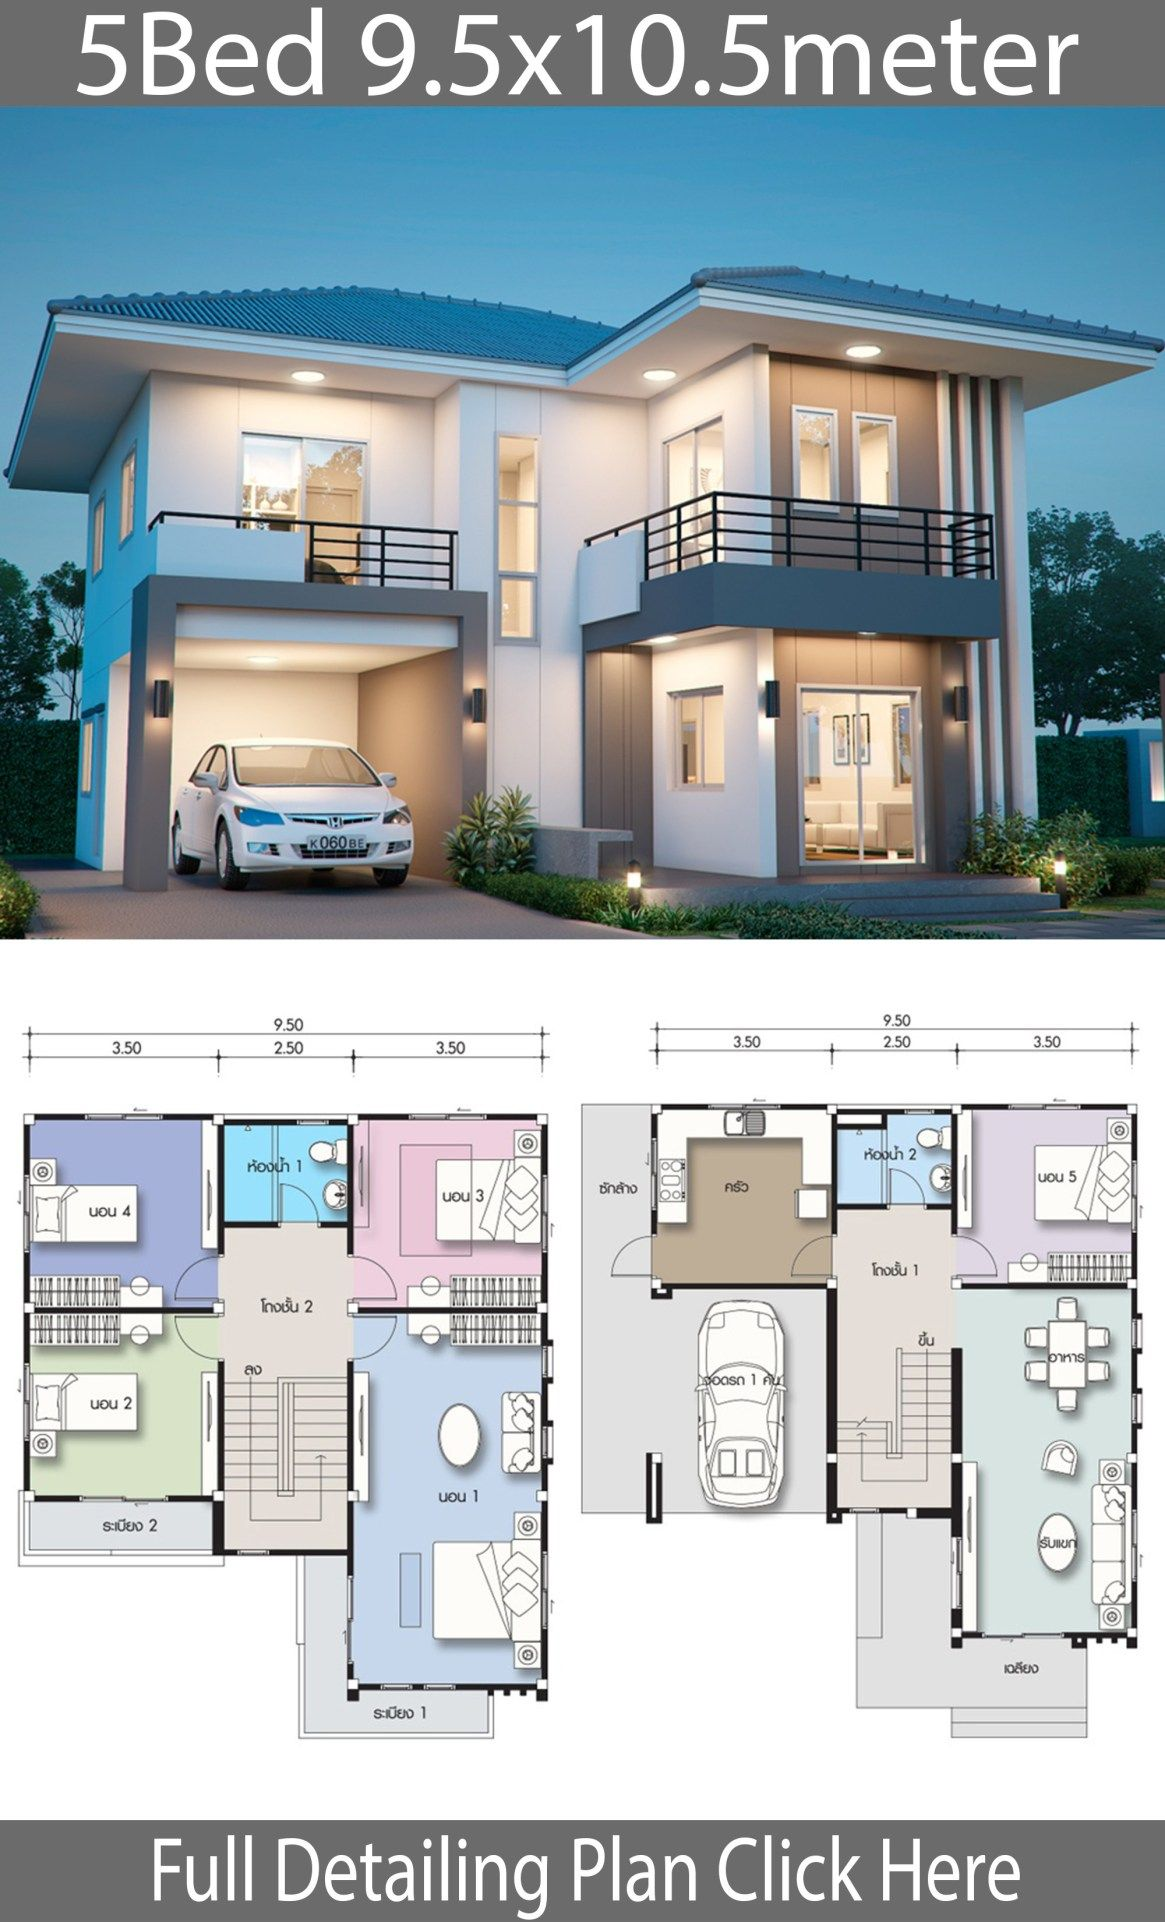 House Design Plan 9 5x10 5m With 5 Bedrooms Home Design With Plansearch Duplex House Design Duplex House Plans Simple House Design